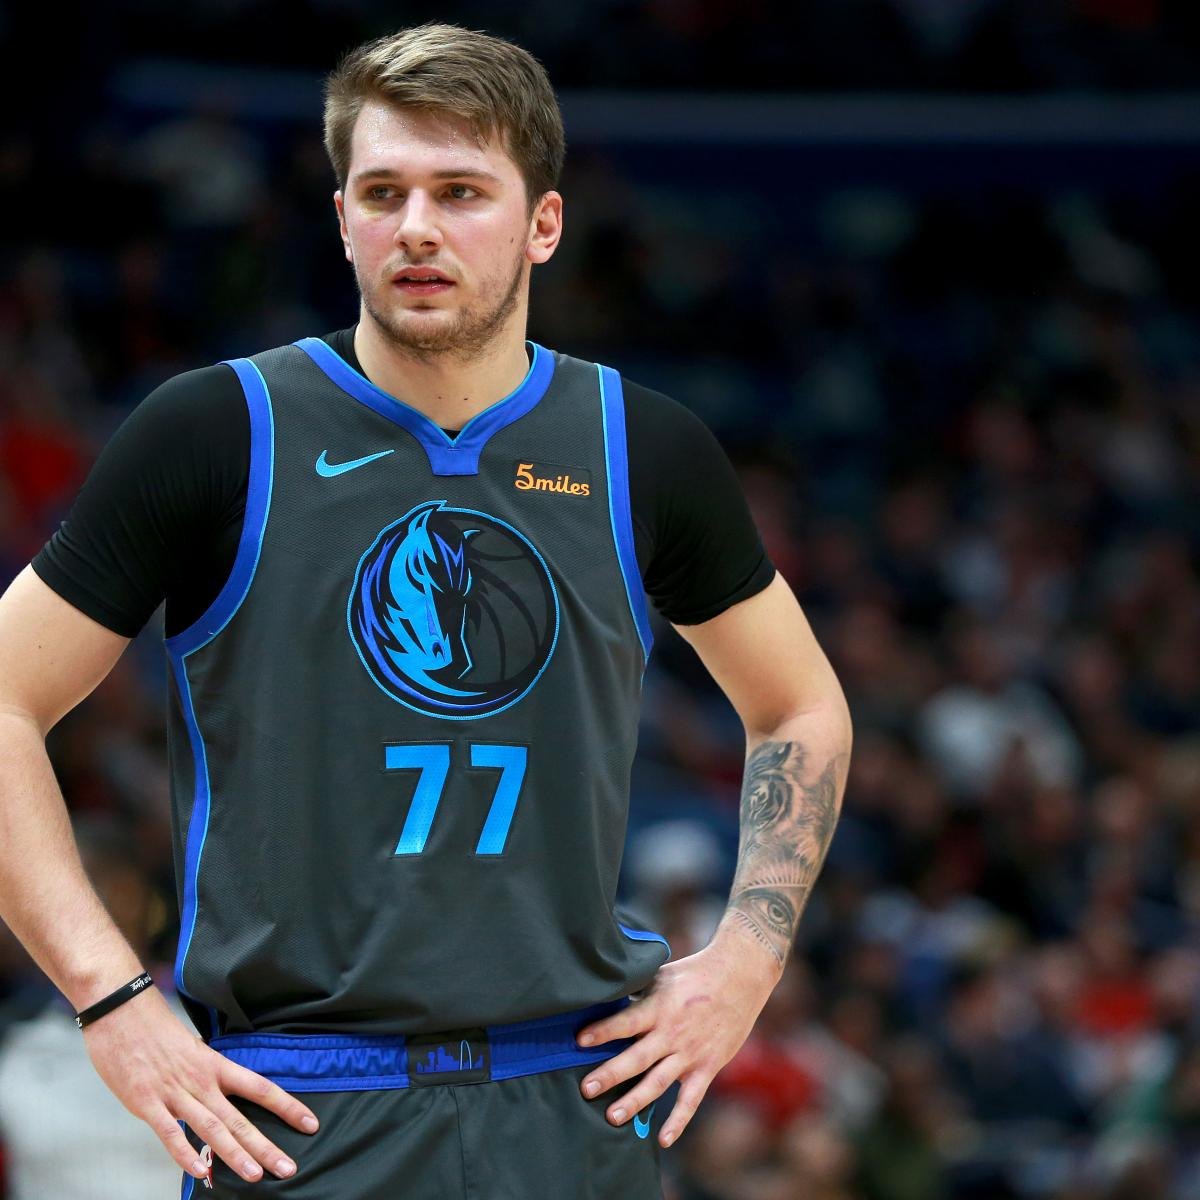 Luka Doncic S Hip Injury Suffered Vs Warriors Not Expected To Be Serious Bleacher Report Latest News Videos And Highlights